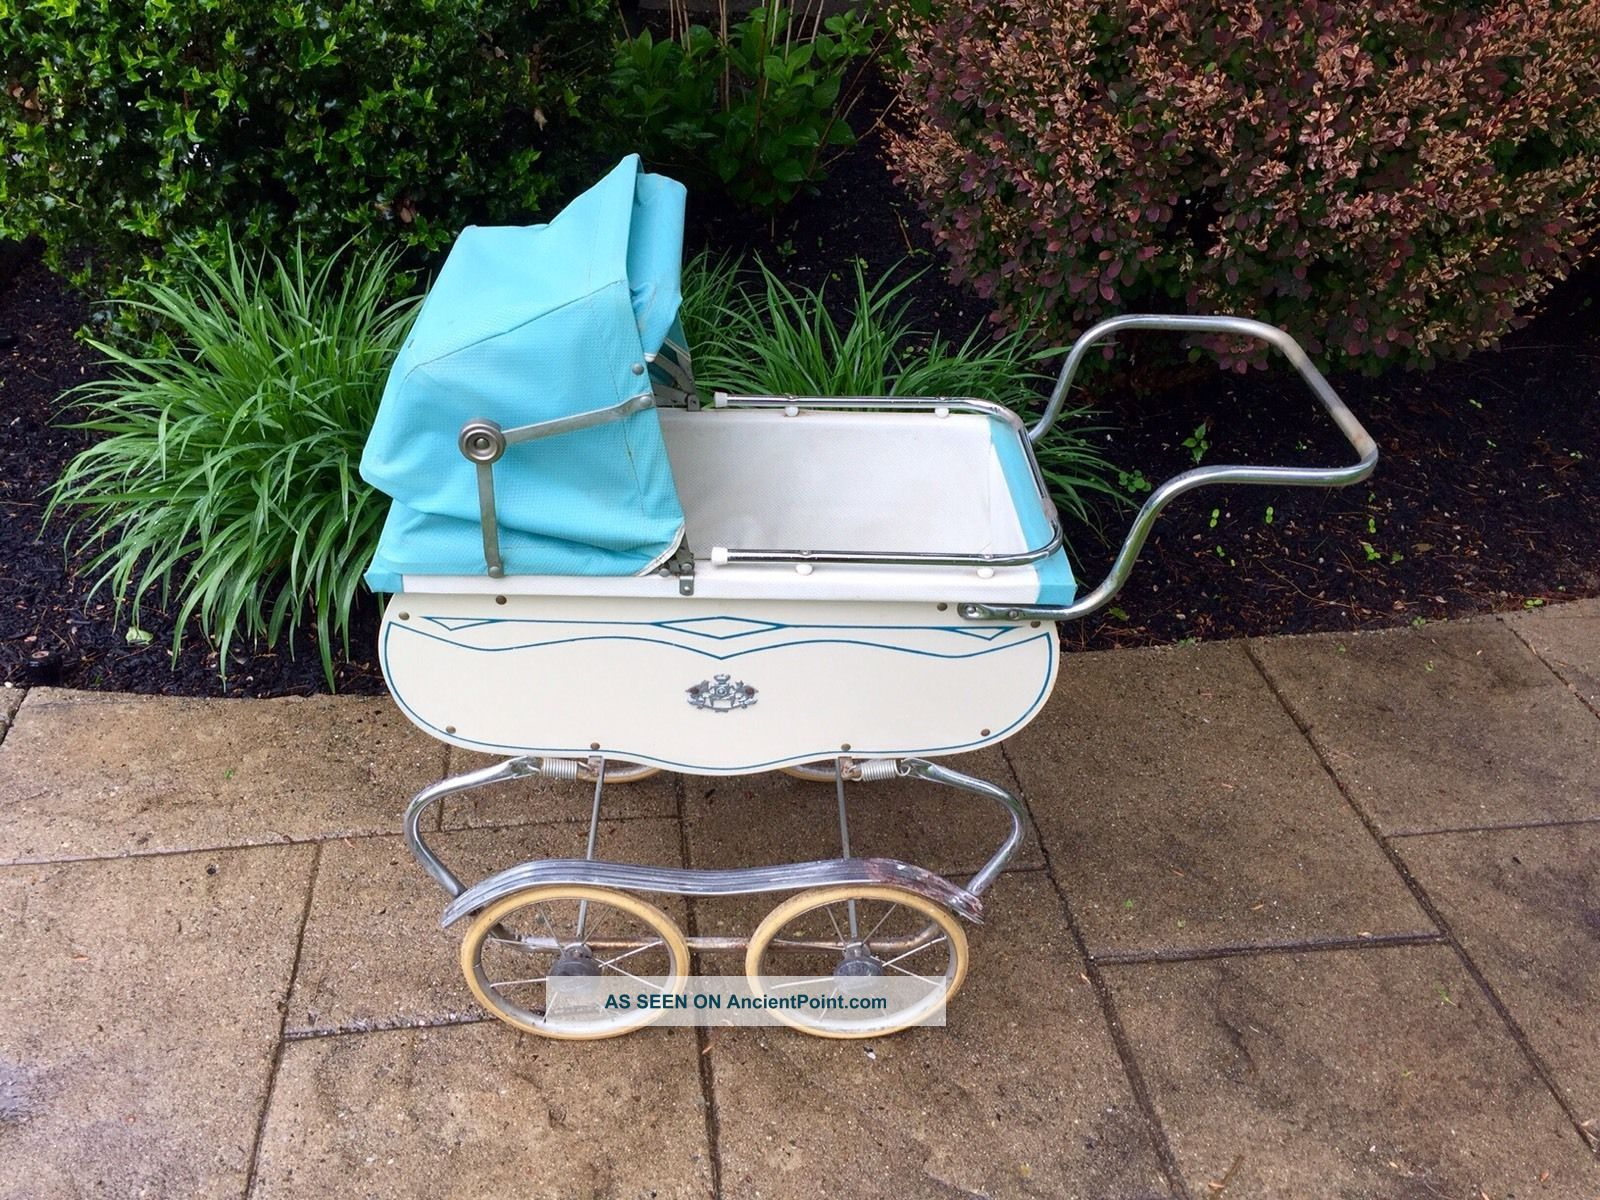 Vintage 1950s Coronet Baby Doll Buggy Carriage Pram Baby Carriages & Buggies photo